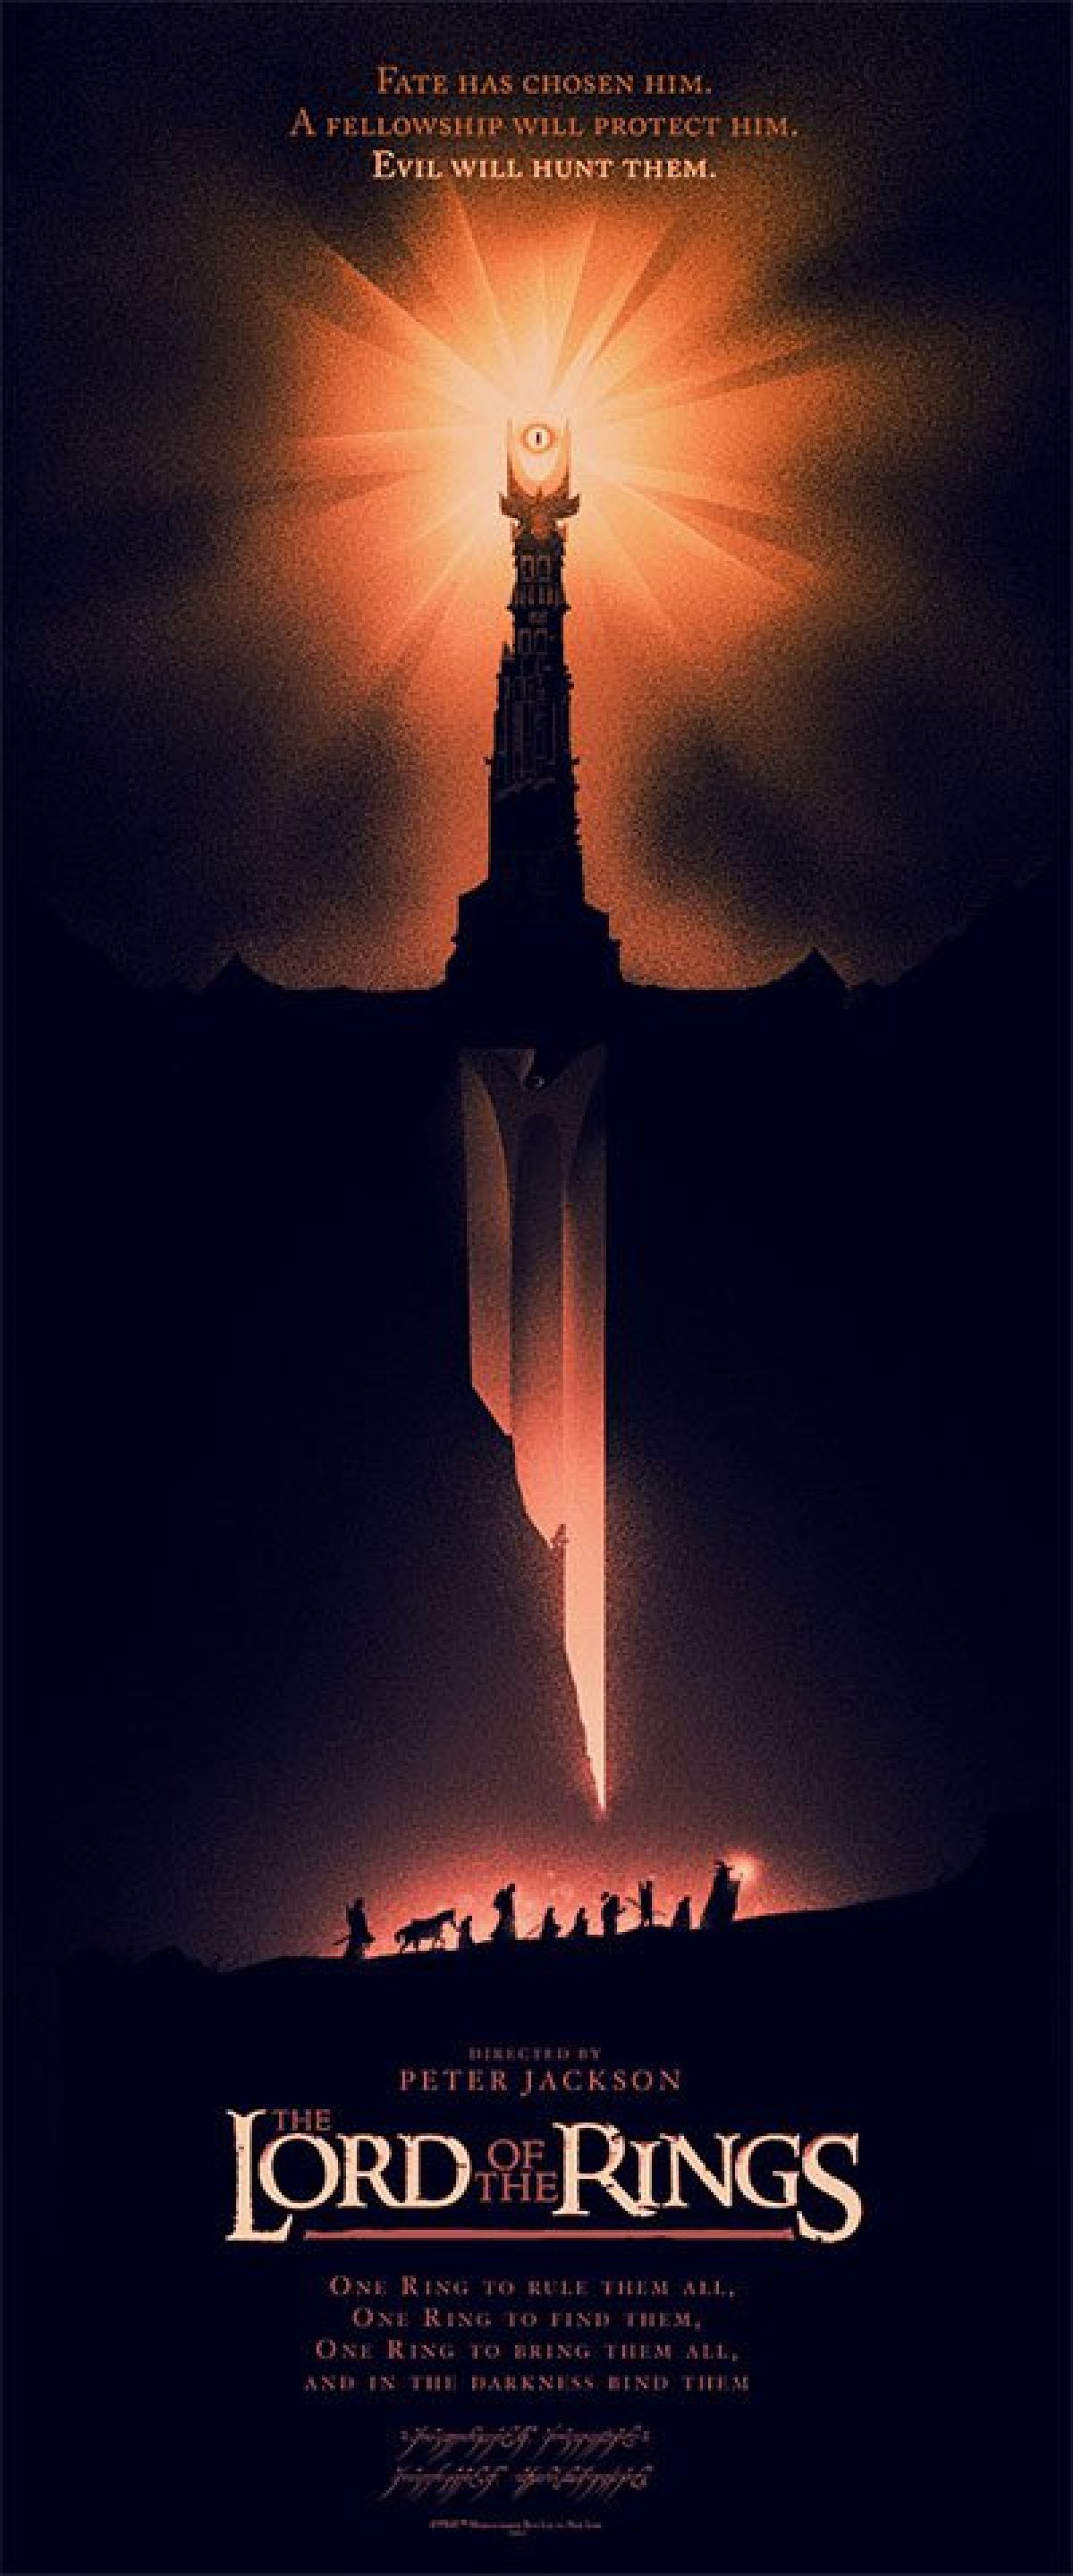 Lord Of The Rings Movie Poster Gimme: These New Mondo...